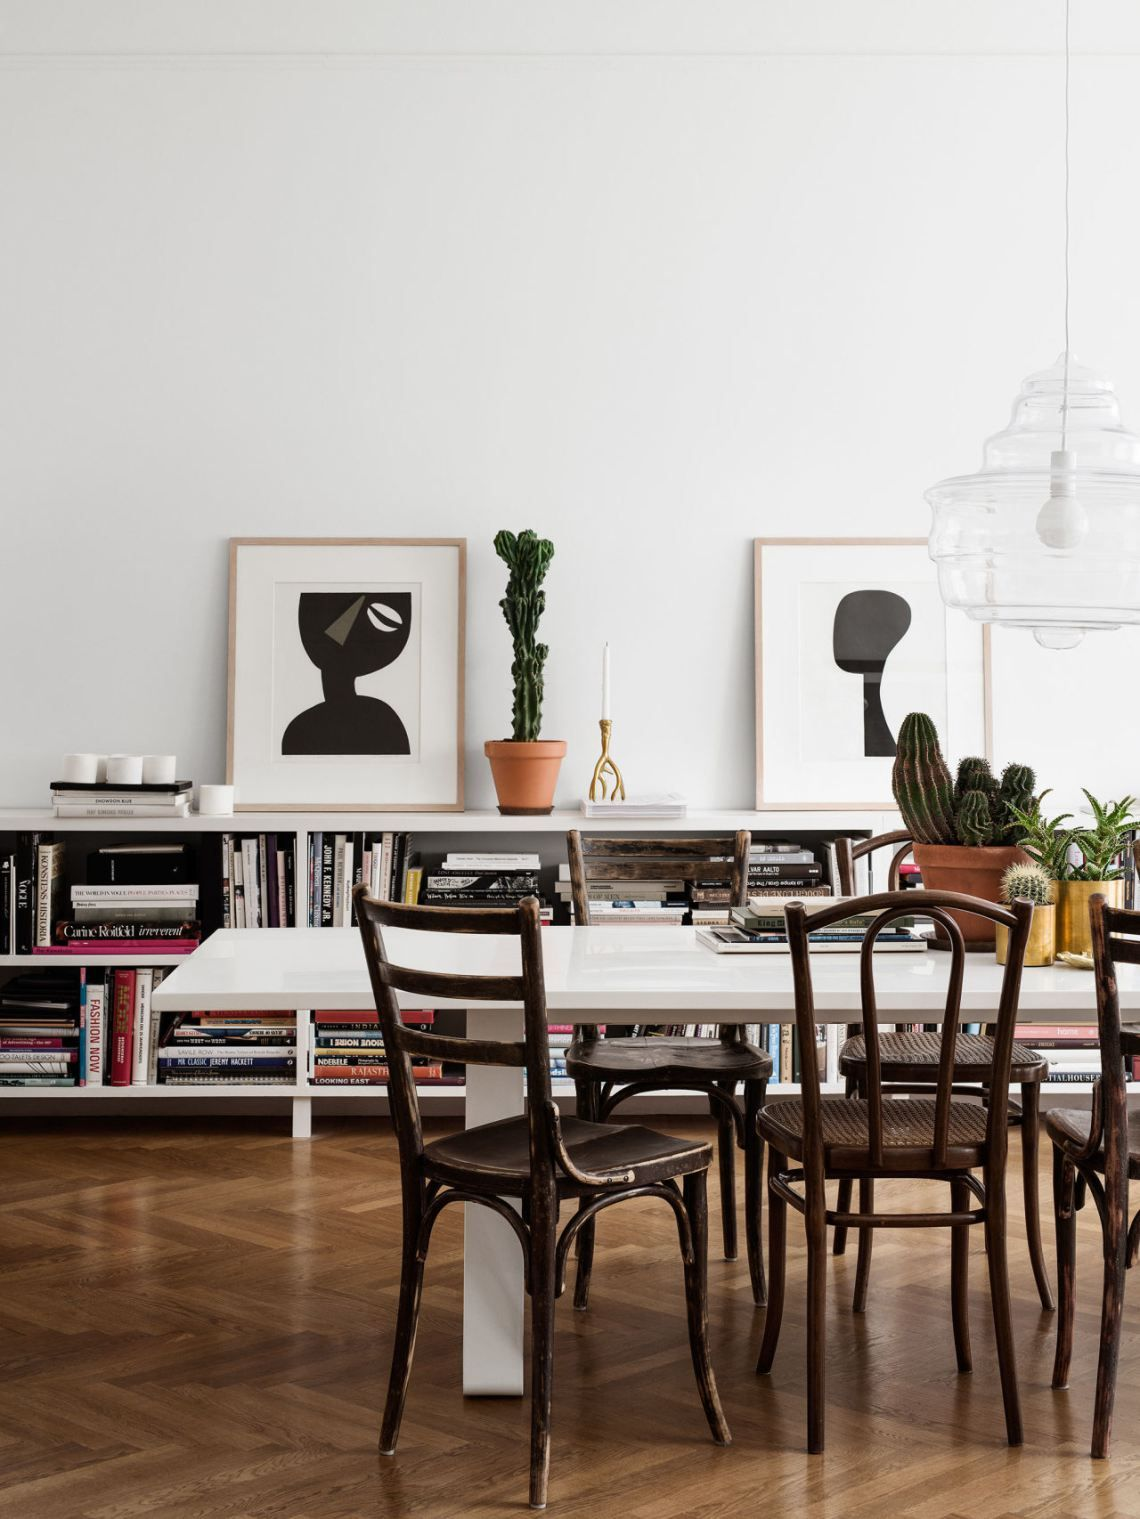 Dining Room Area Impressive Home Of H&m's Head Of Design  Interiors  Pinterest  Dining Inspiration